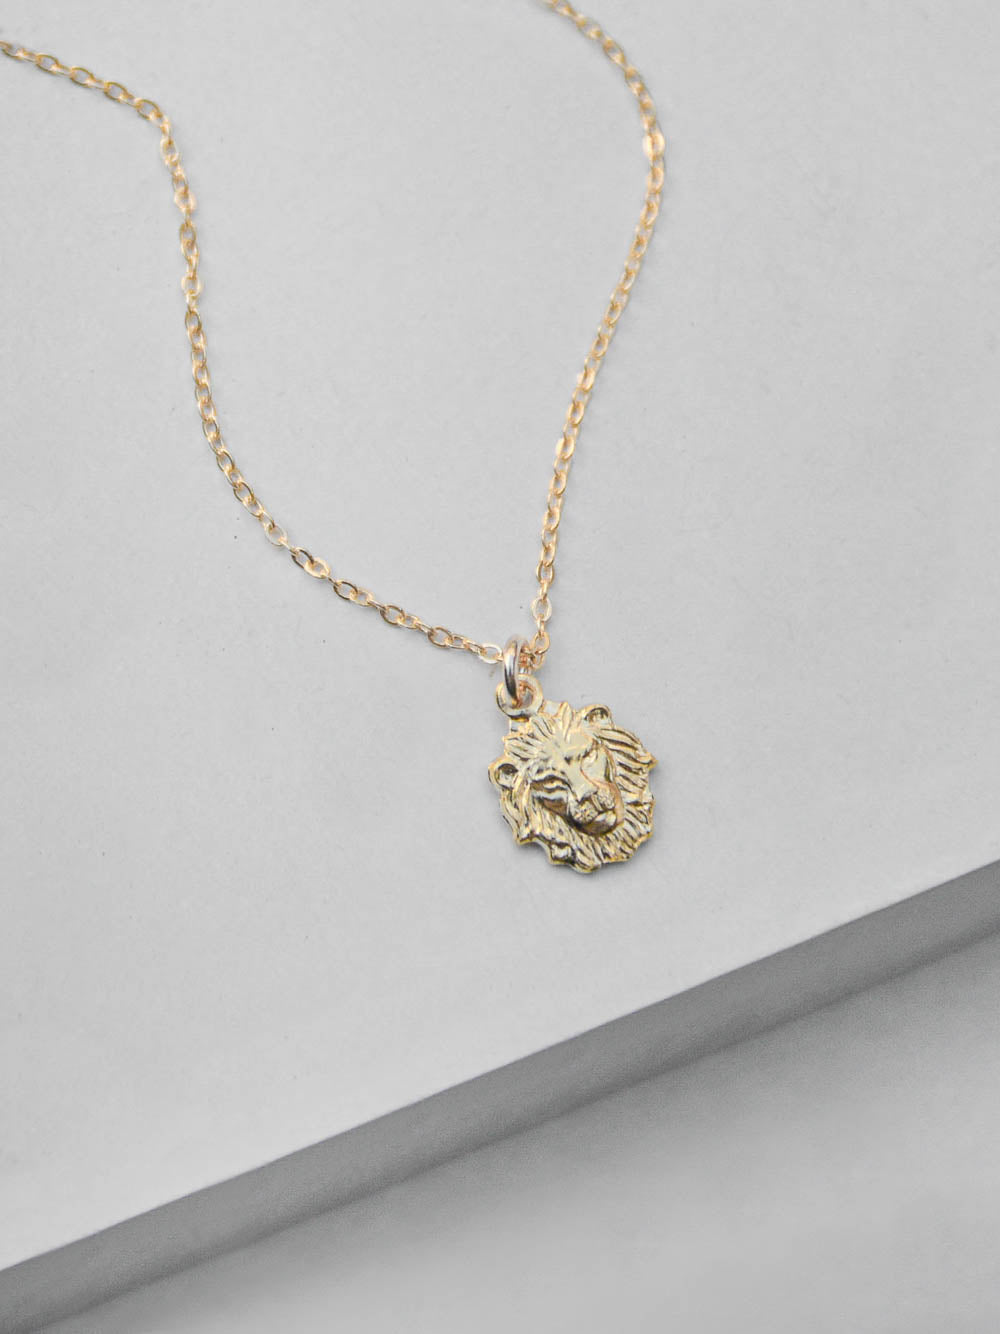 Lion Charm Necklace - Gold